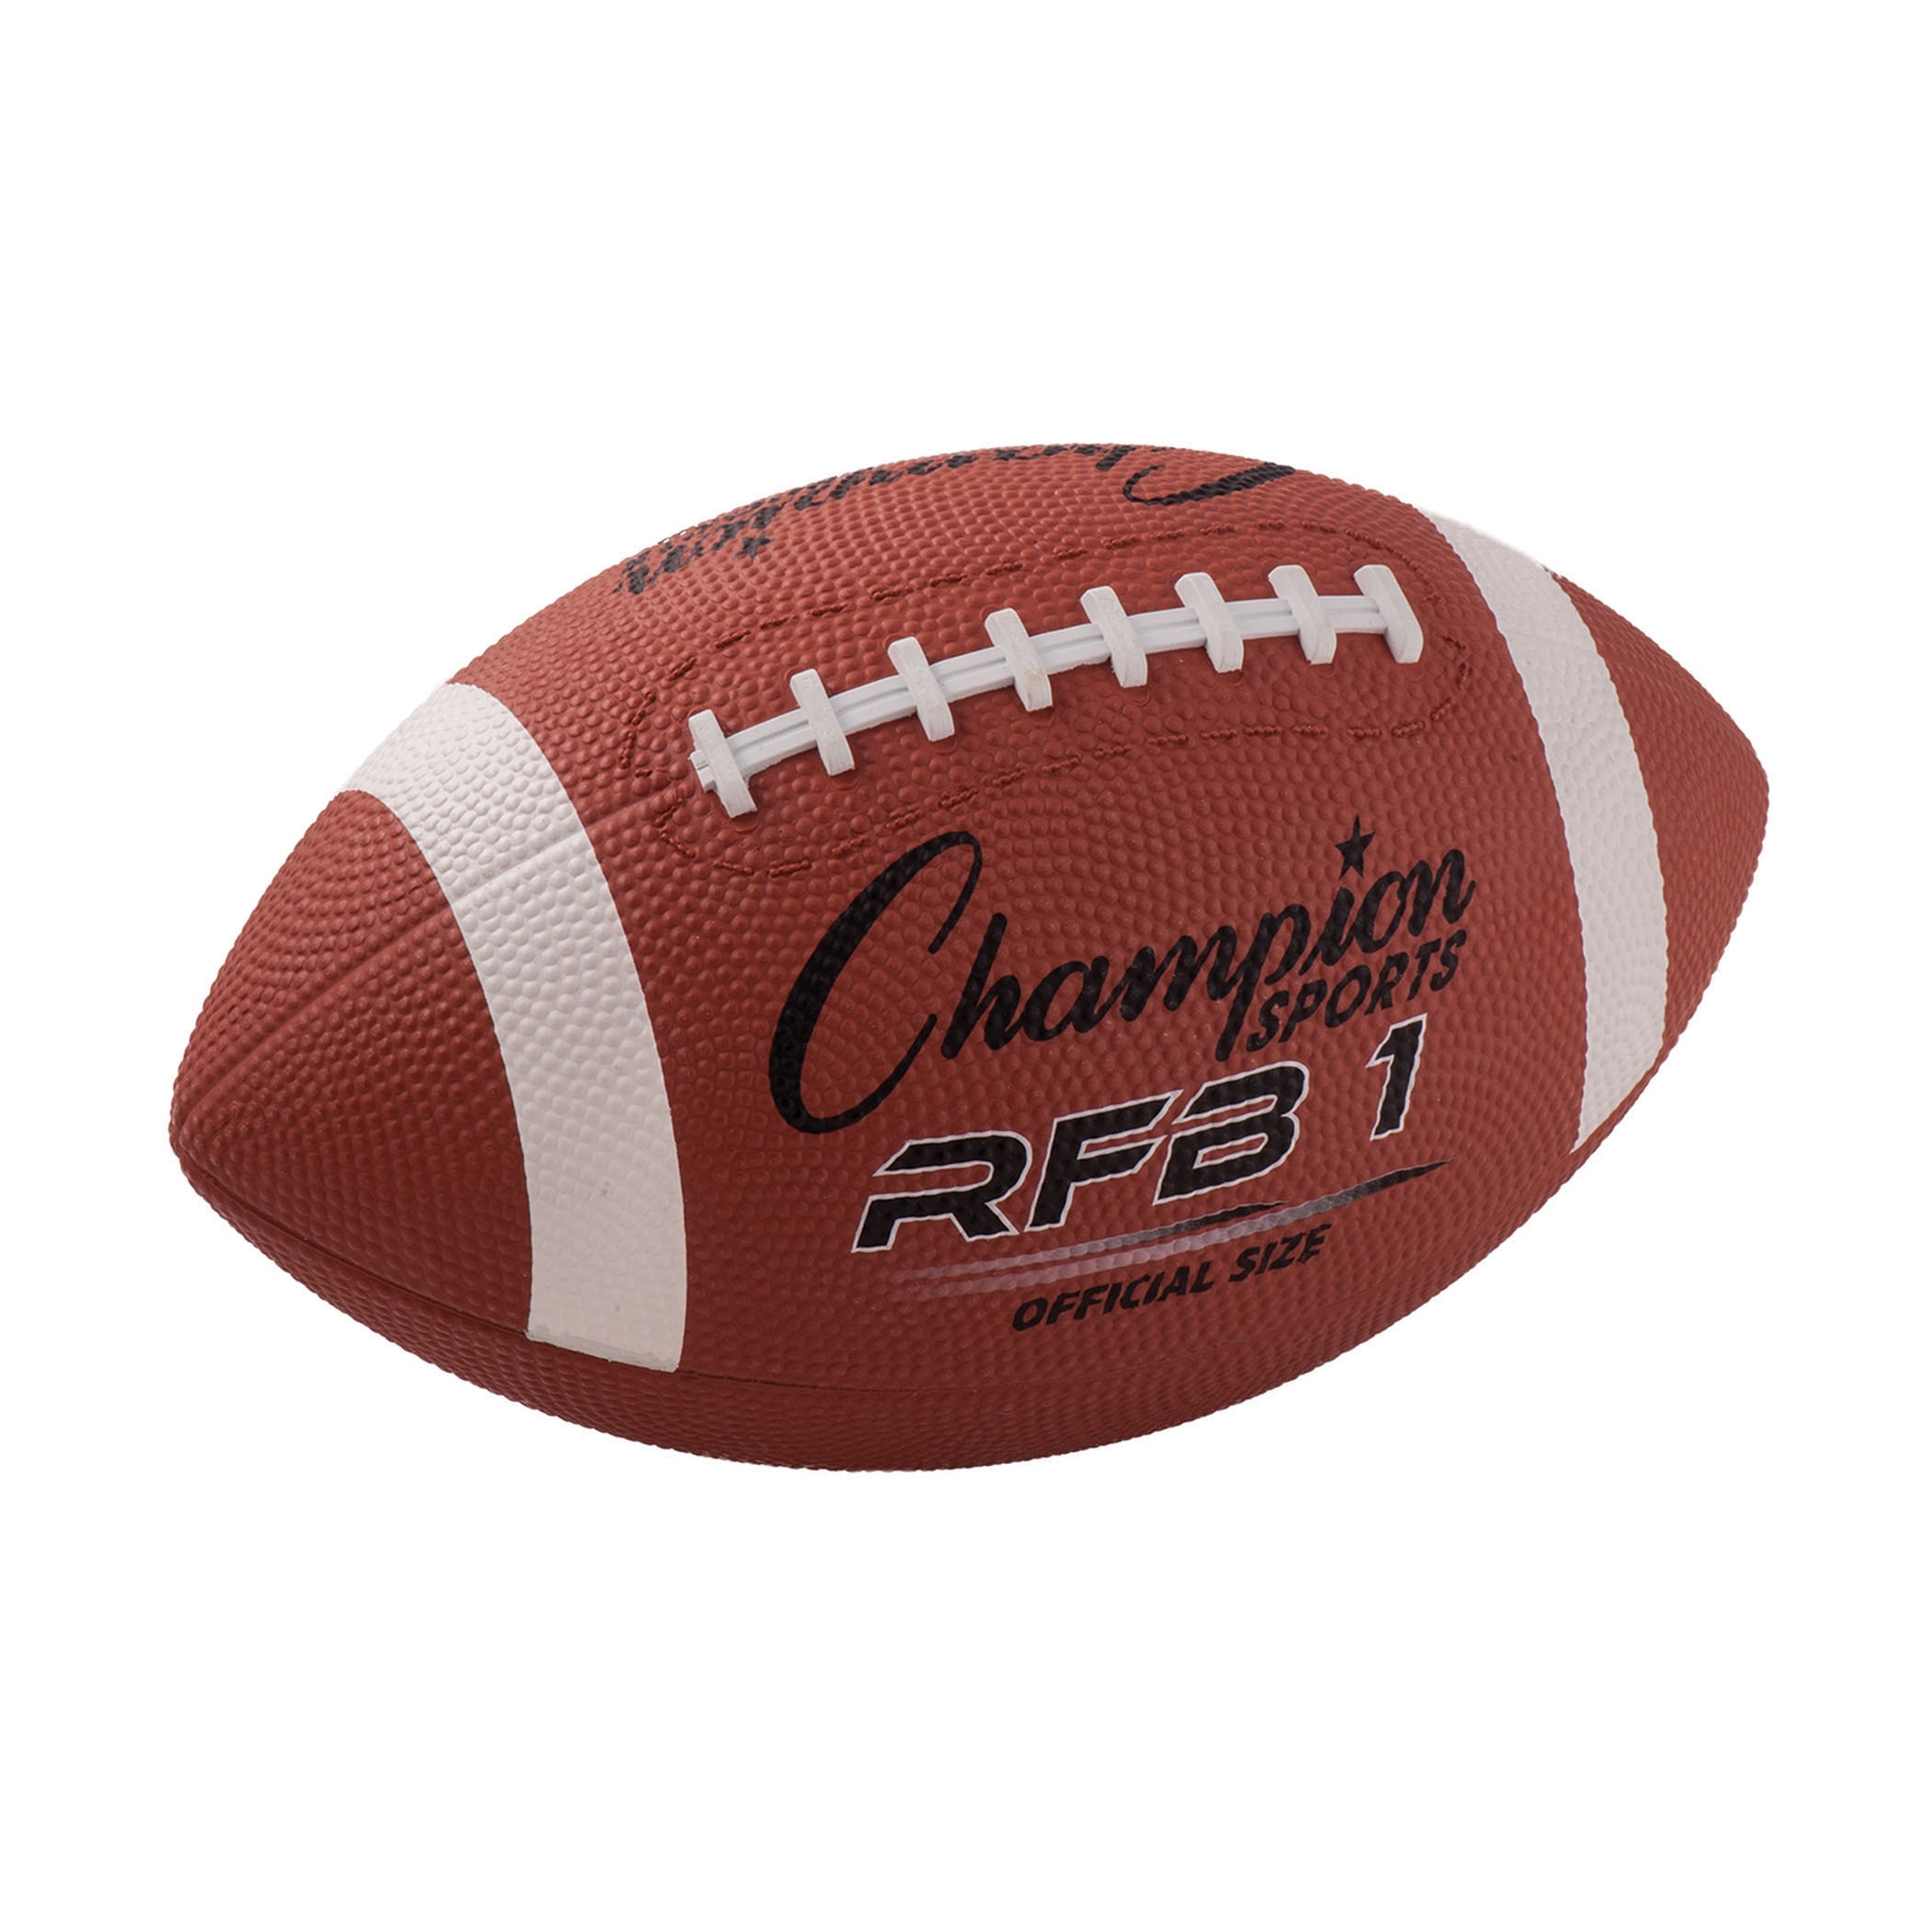 Official Size Rubber Football, Pack of 2